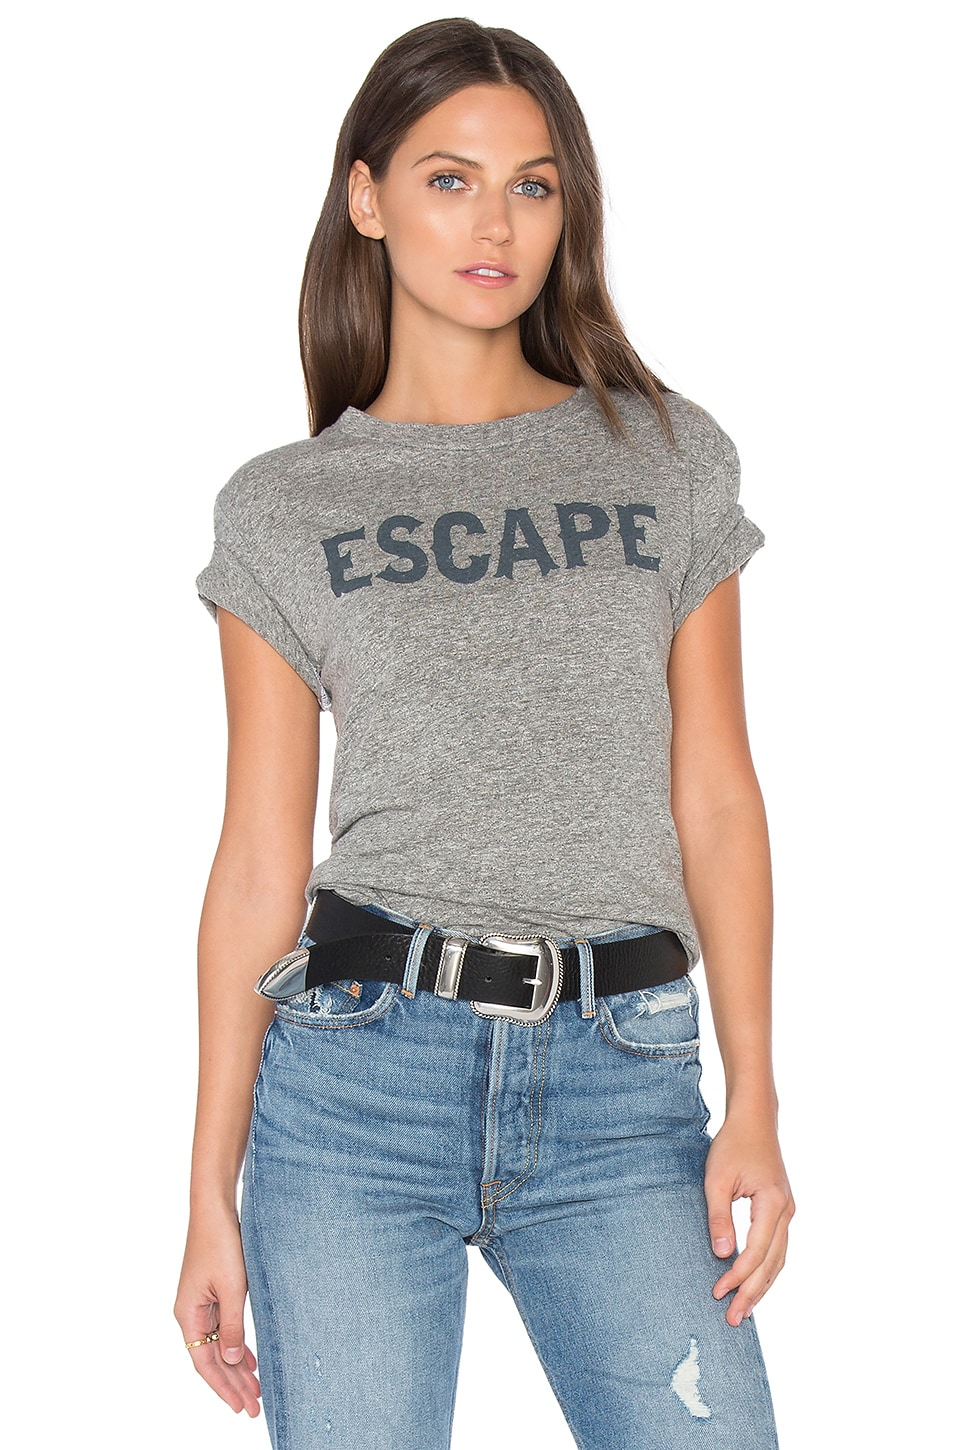 Escape Beau Crew Tee by MATE the Label